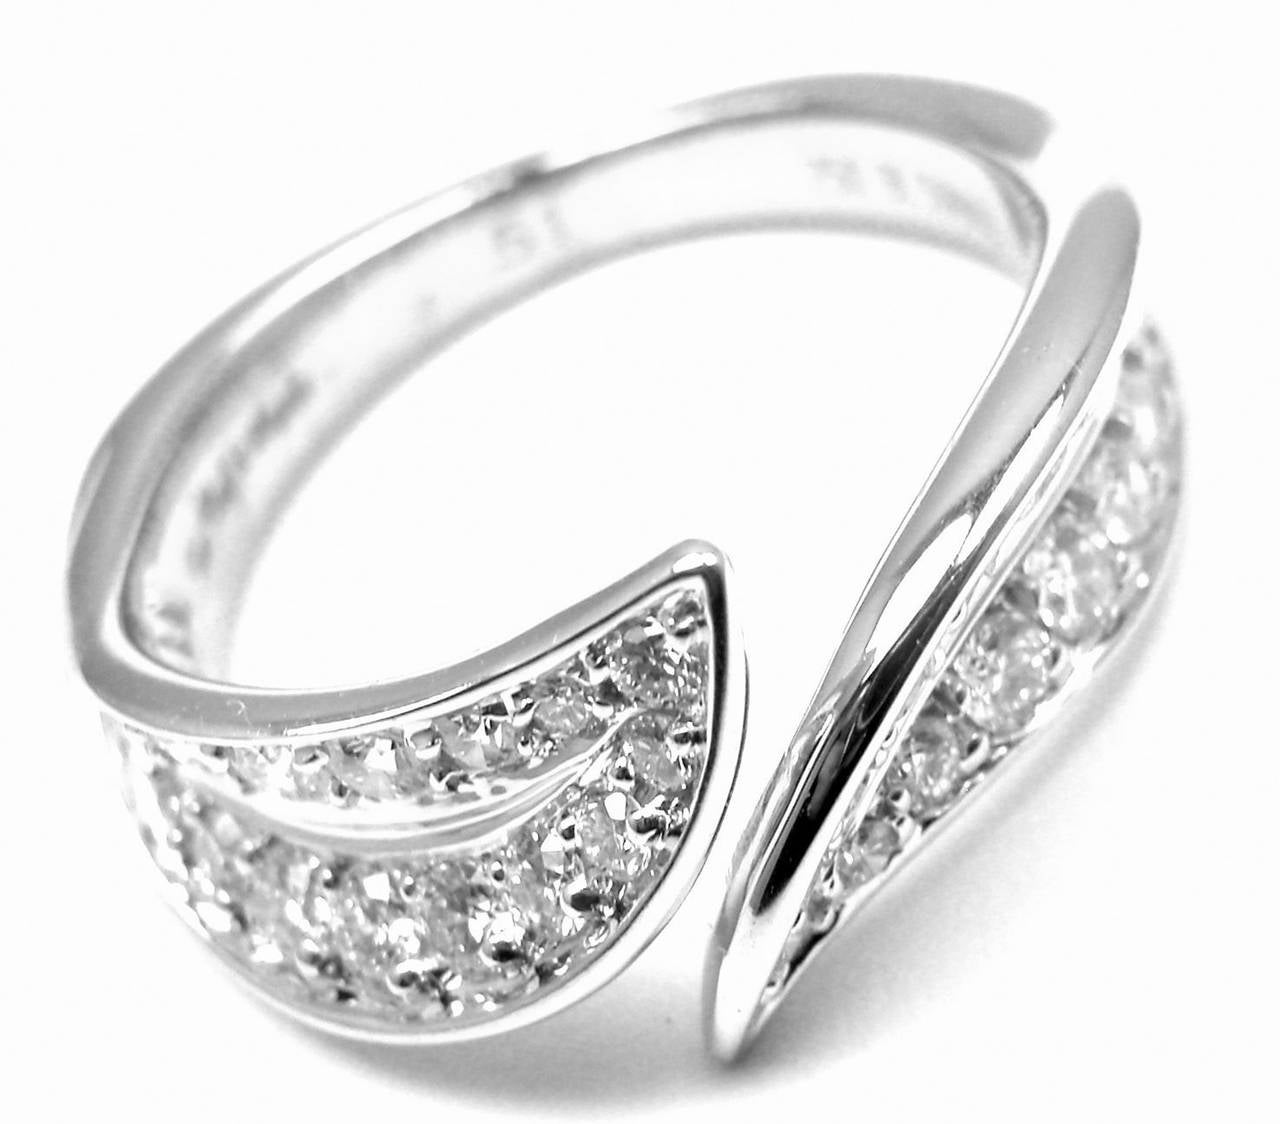 Van Cleef & Arpels Diamond Gold Band Ring For Sale 4